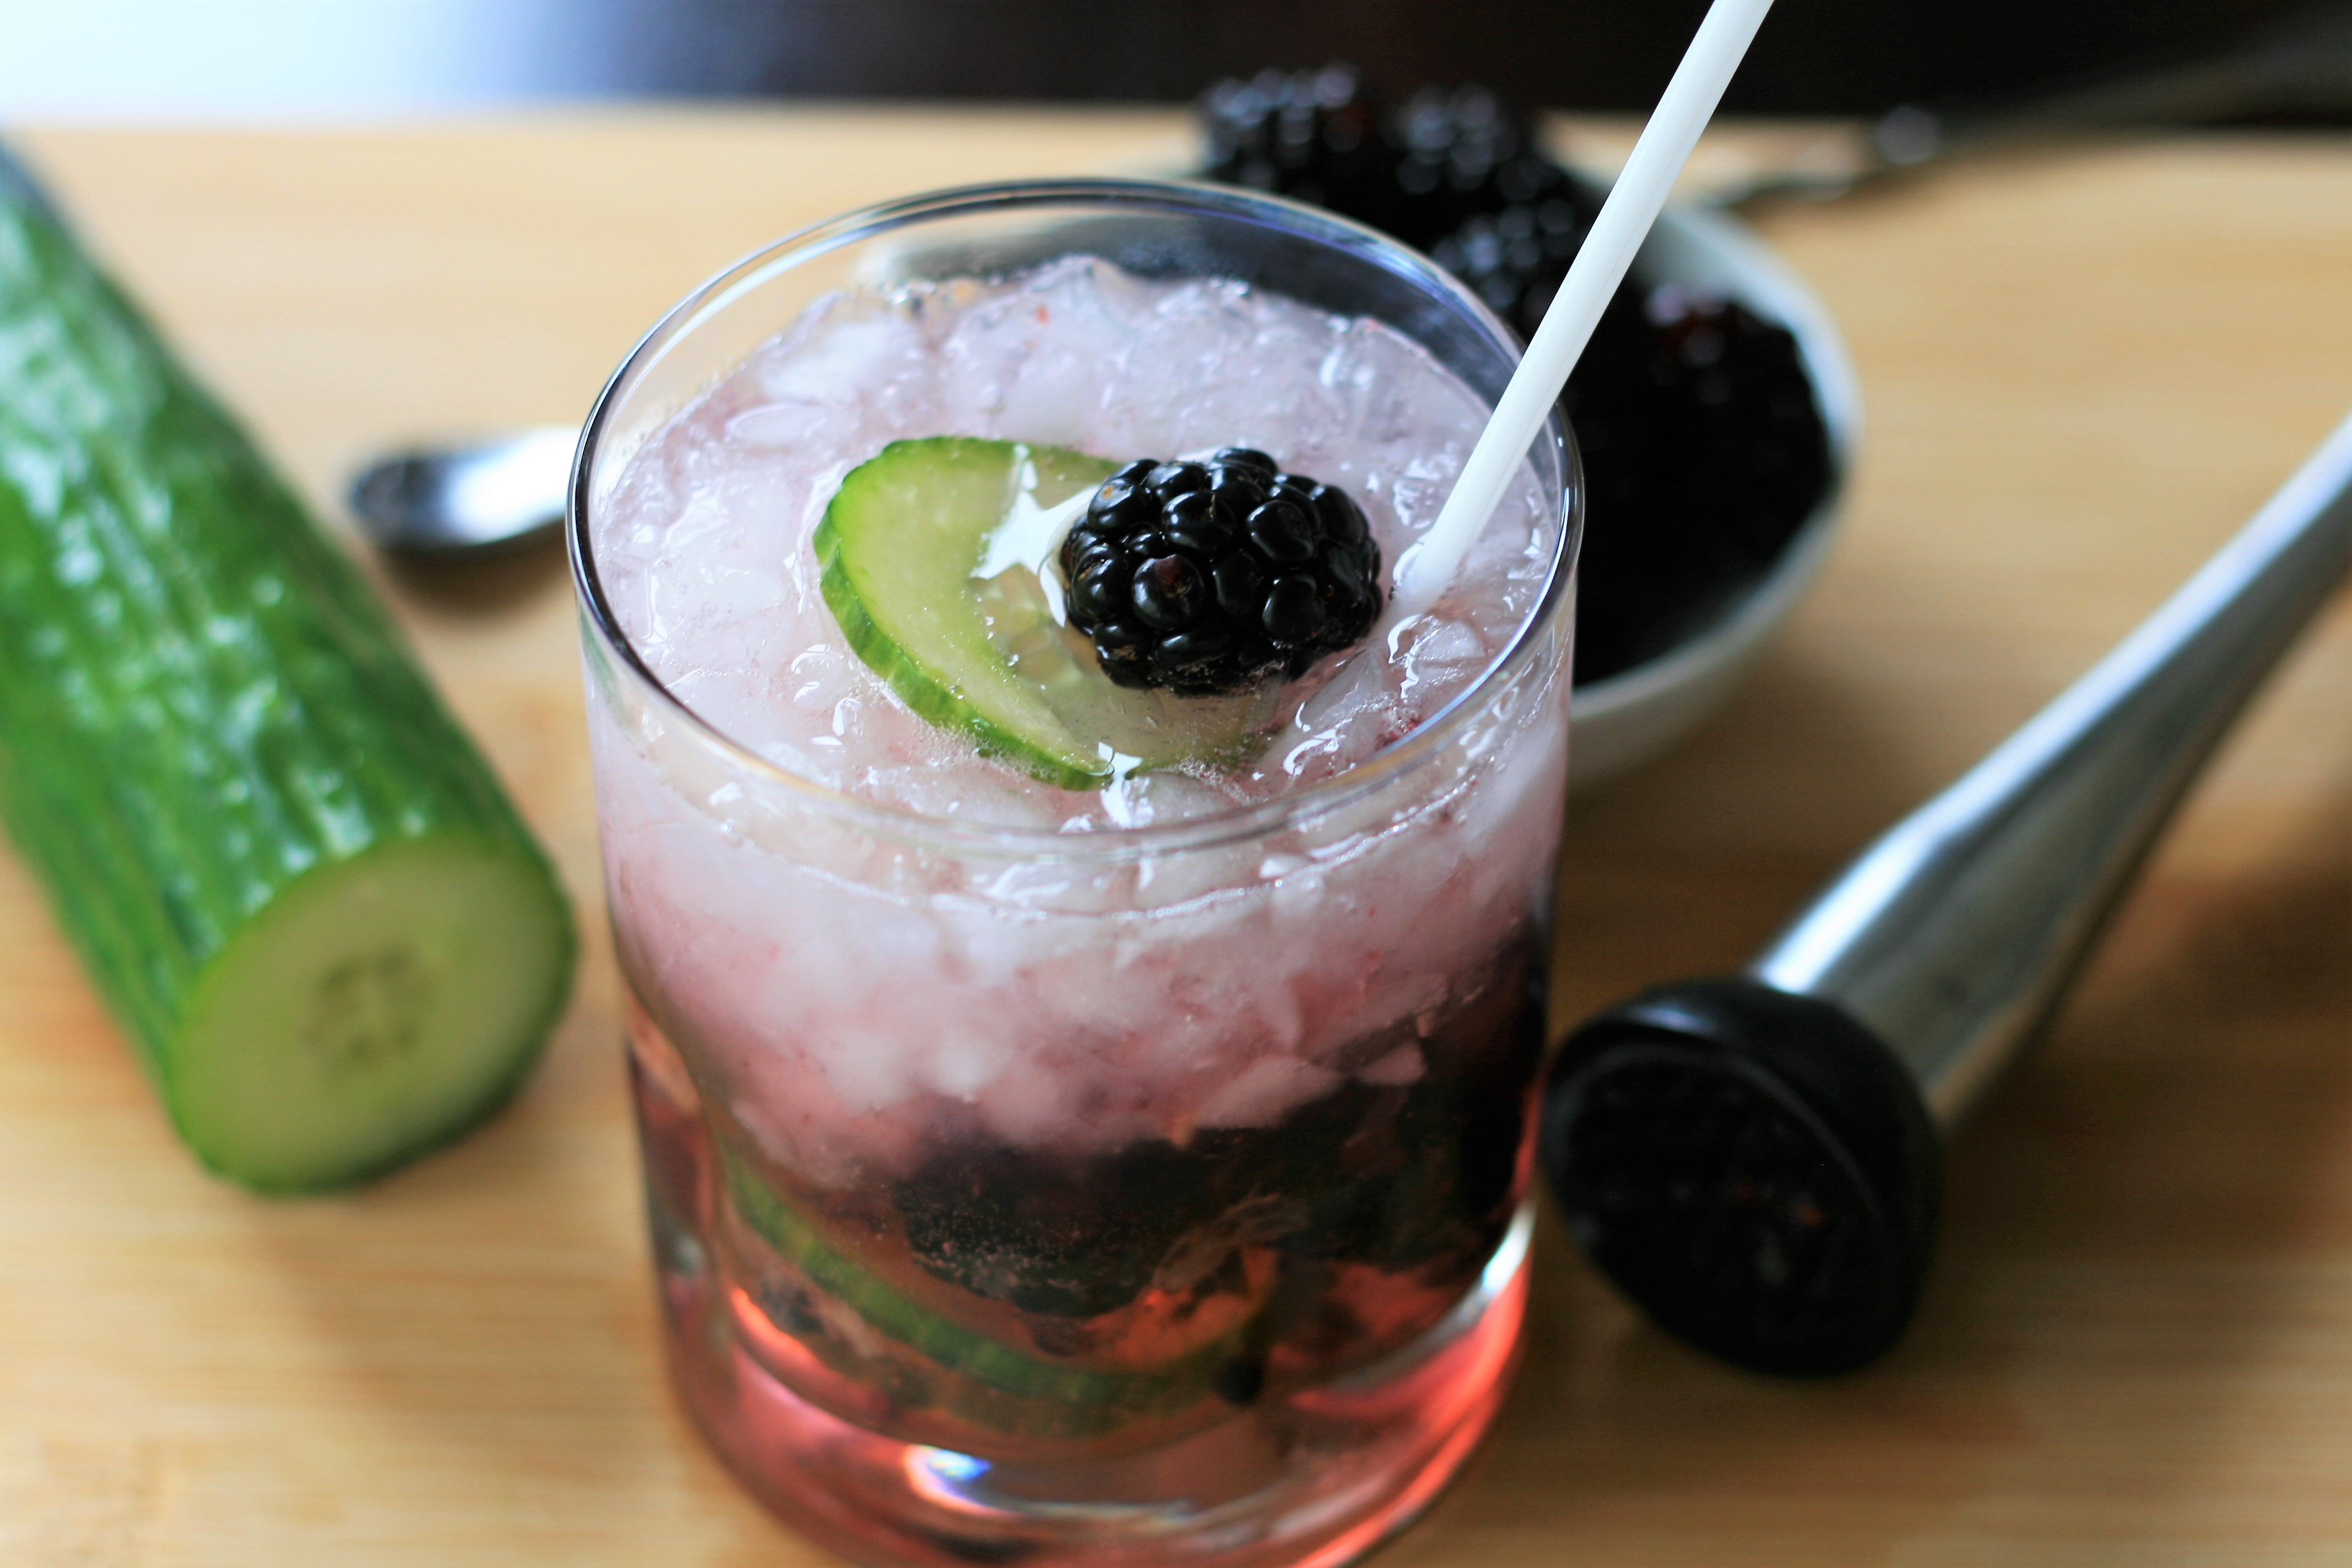 "Fresh blackberries and slices of cucumber add fun and flavor to a classic vodka tonic. ""This vodka and cucumber cocktail is a refreshing and colorful spin on the classic cocktail,"" says France C."